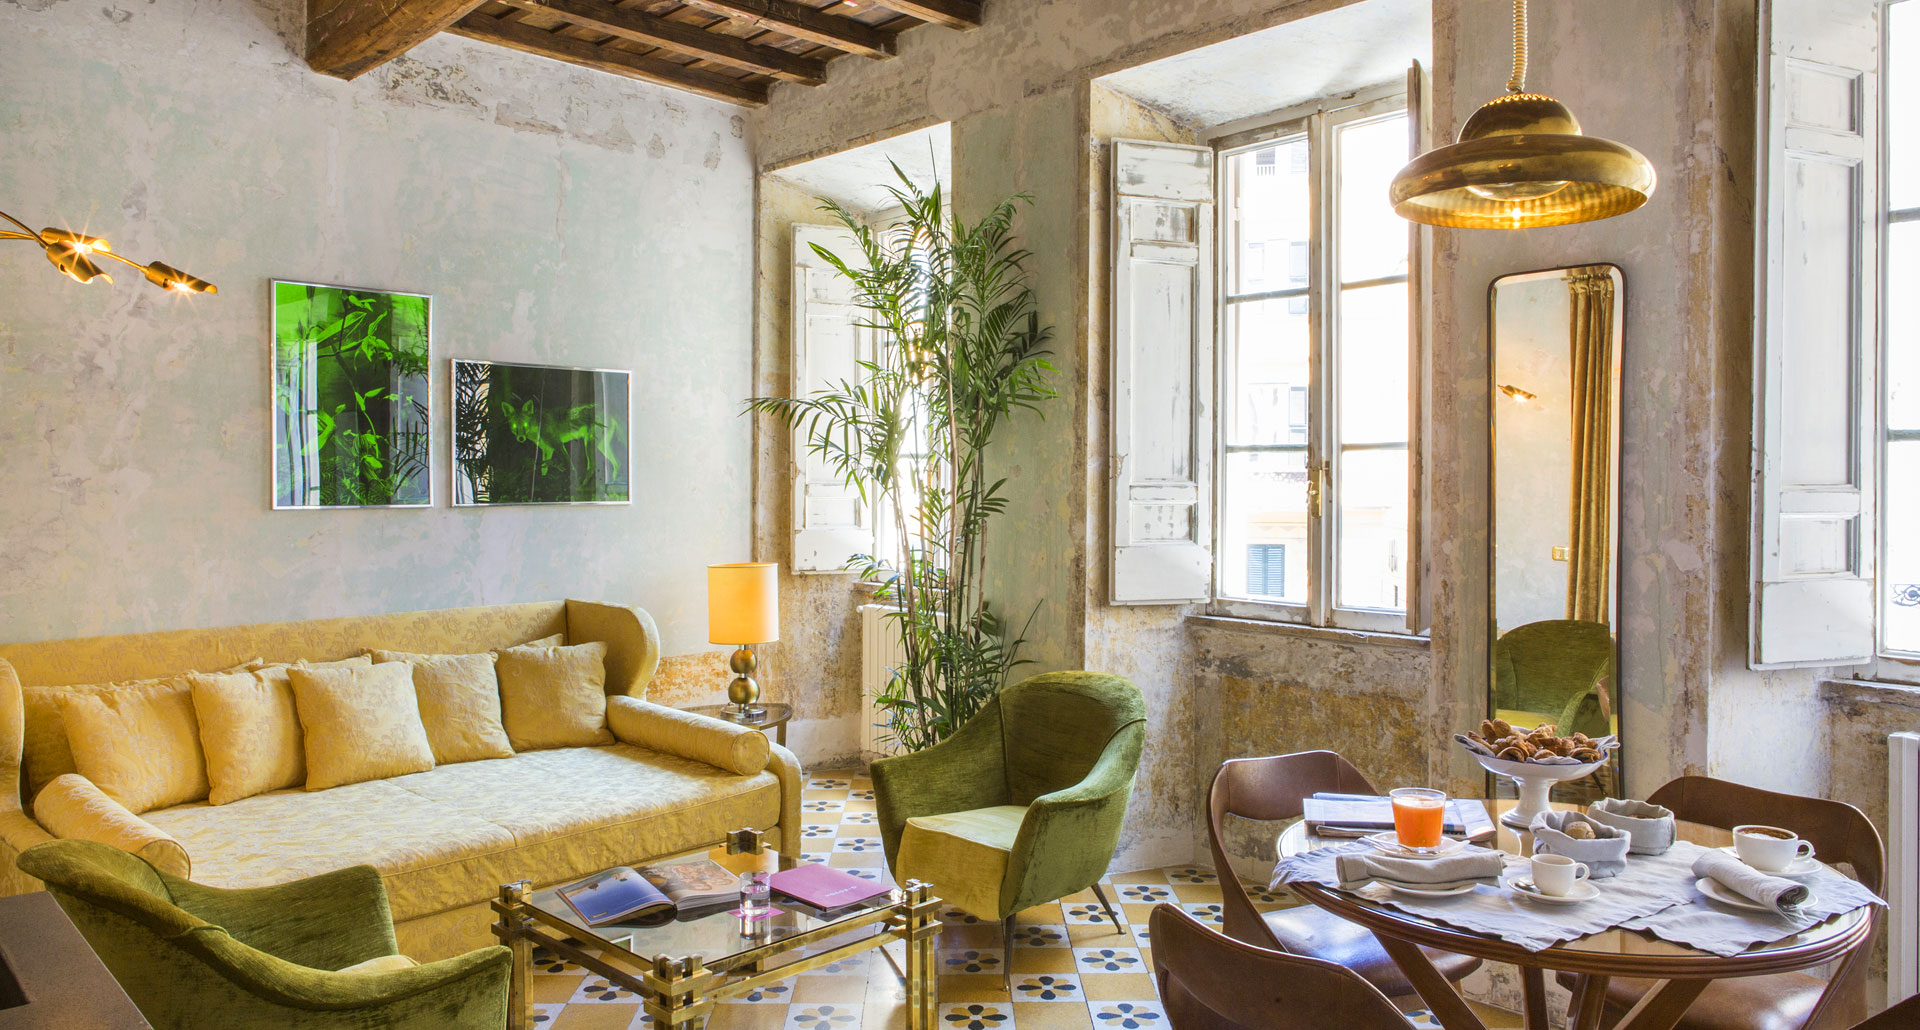 G-Rough boutique hotel in Rome, Italy